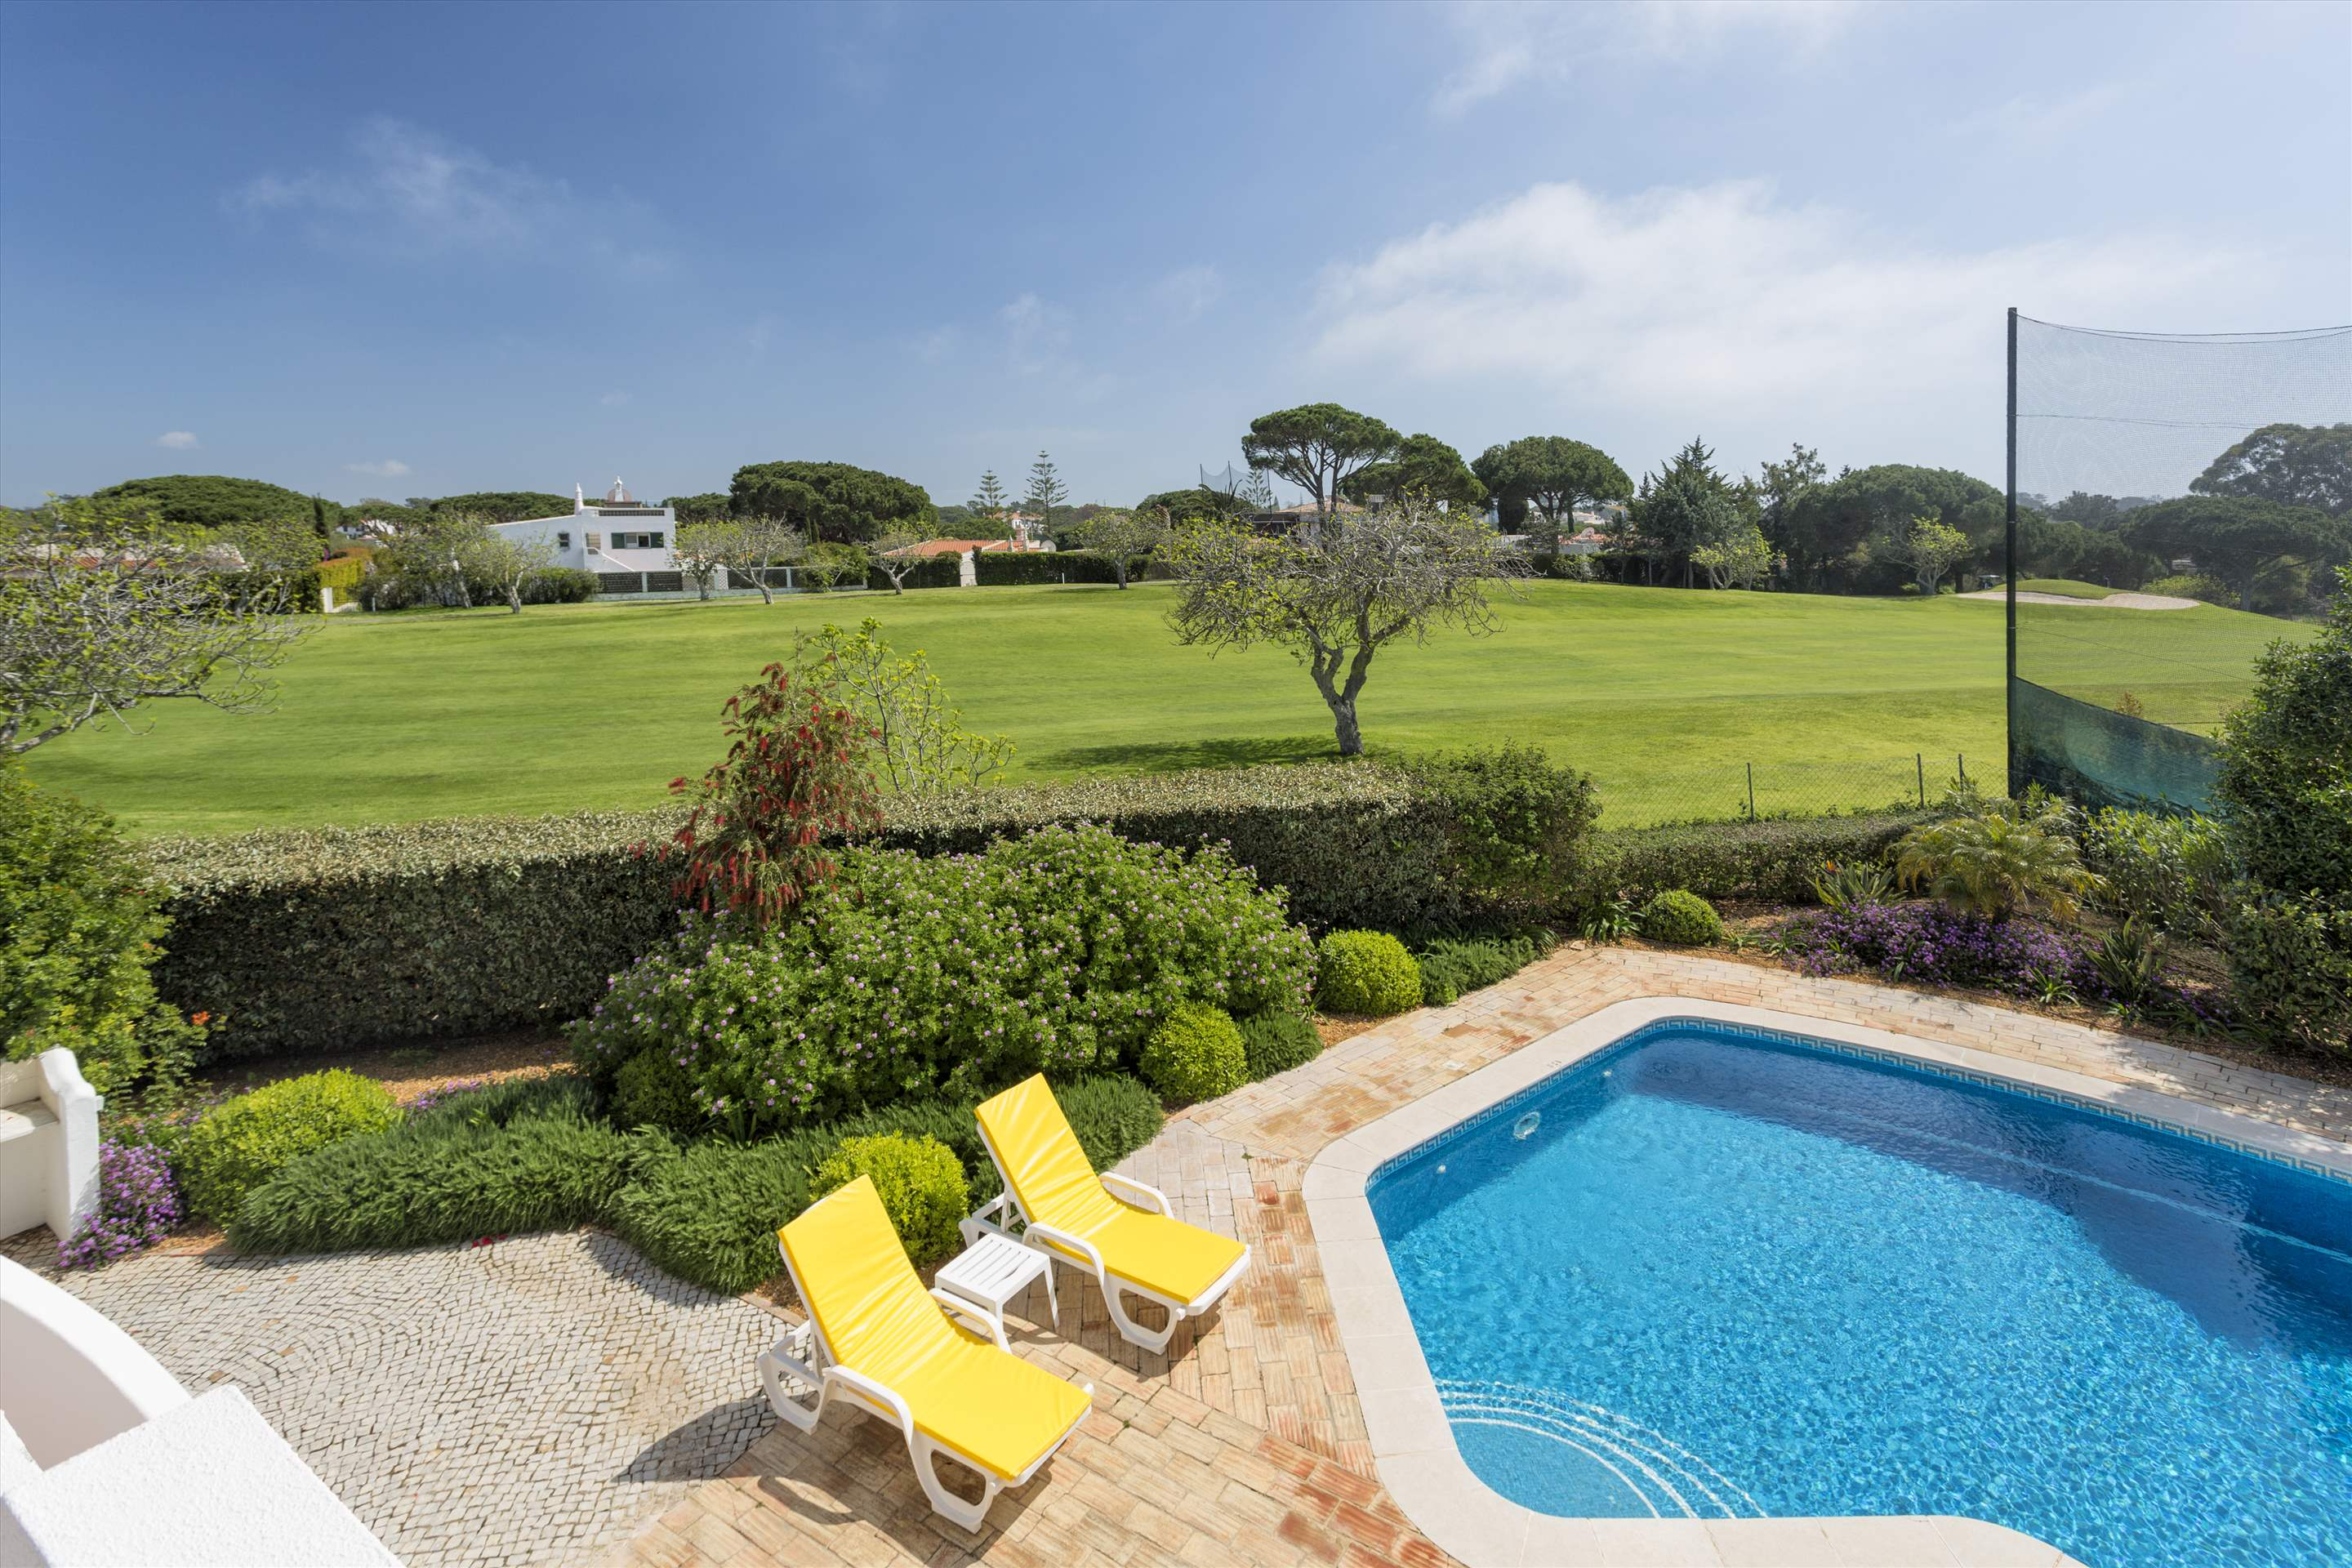 Villa Palmeira, 3 bedroom villa in Vale do Lobo, Algarve Photo #2